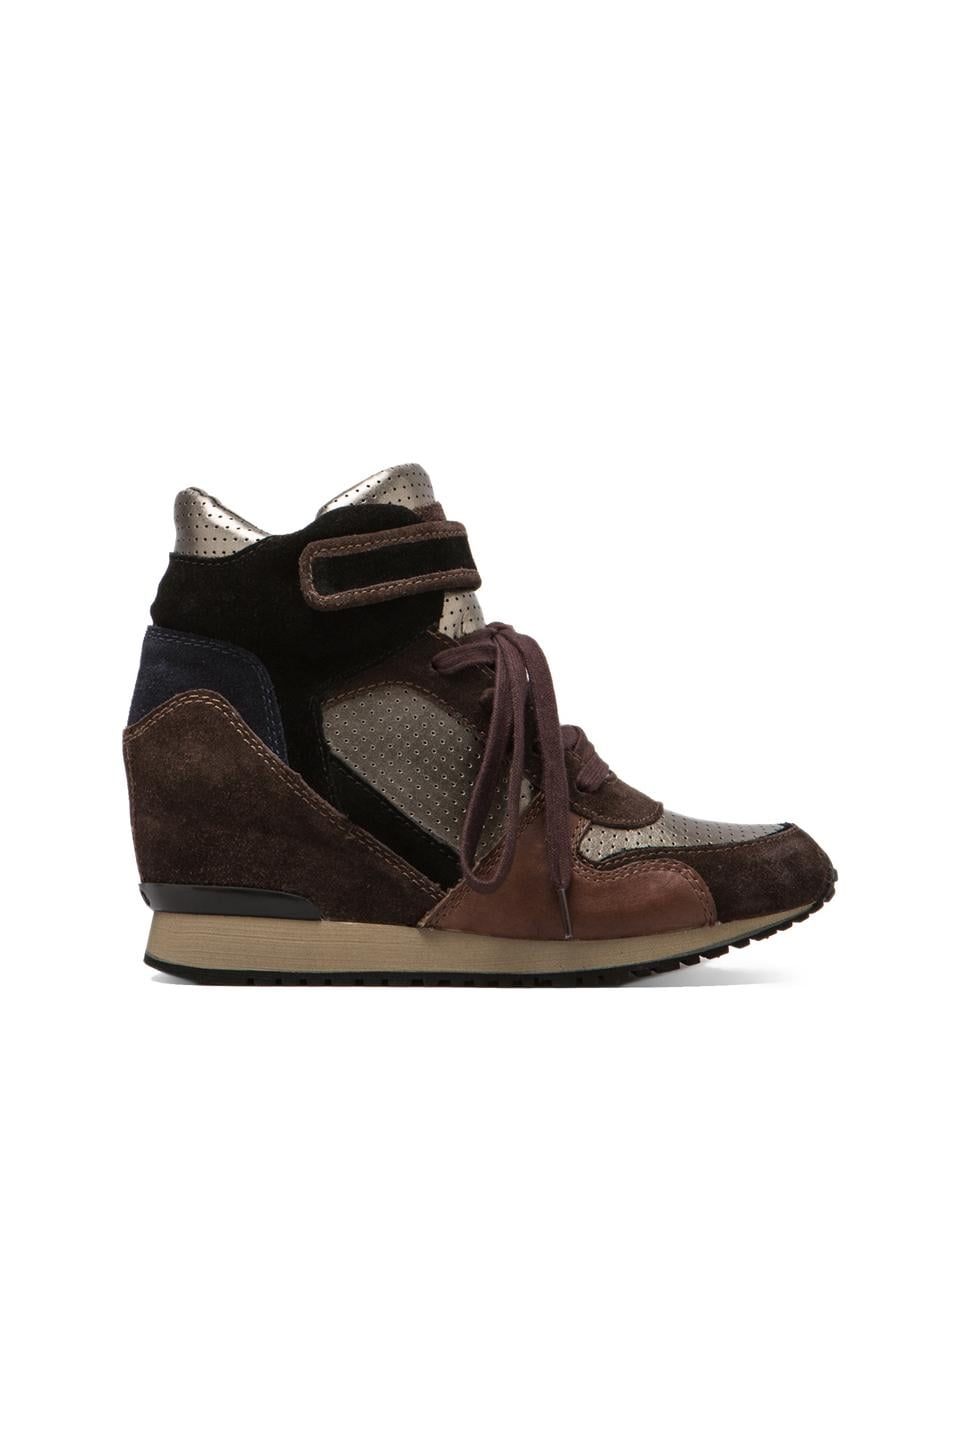 Ash Drum Wedge Sneaker in Wood Ash/Piombo